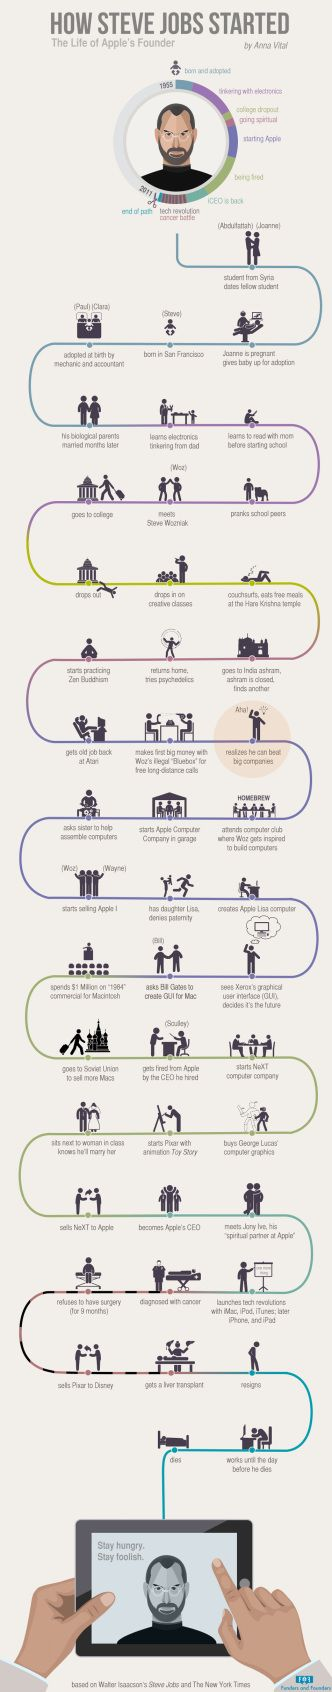 Funders and Founders - Visual Startup Blog